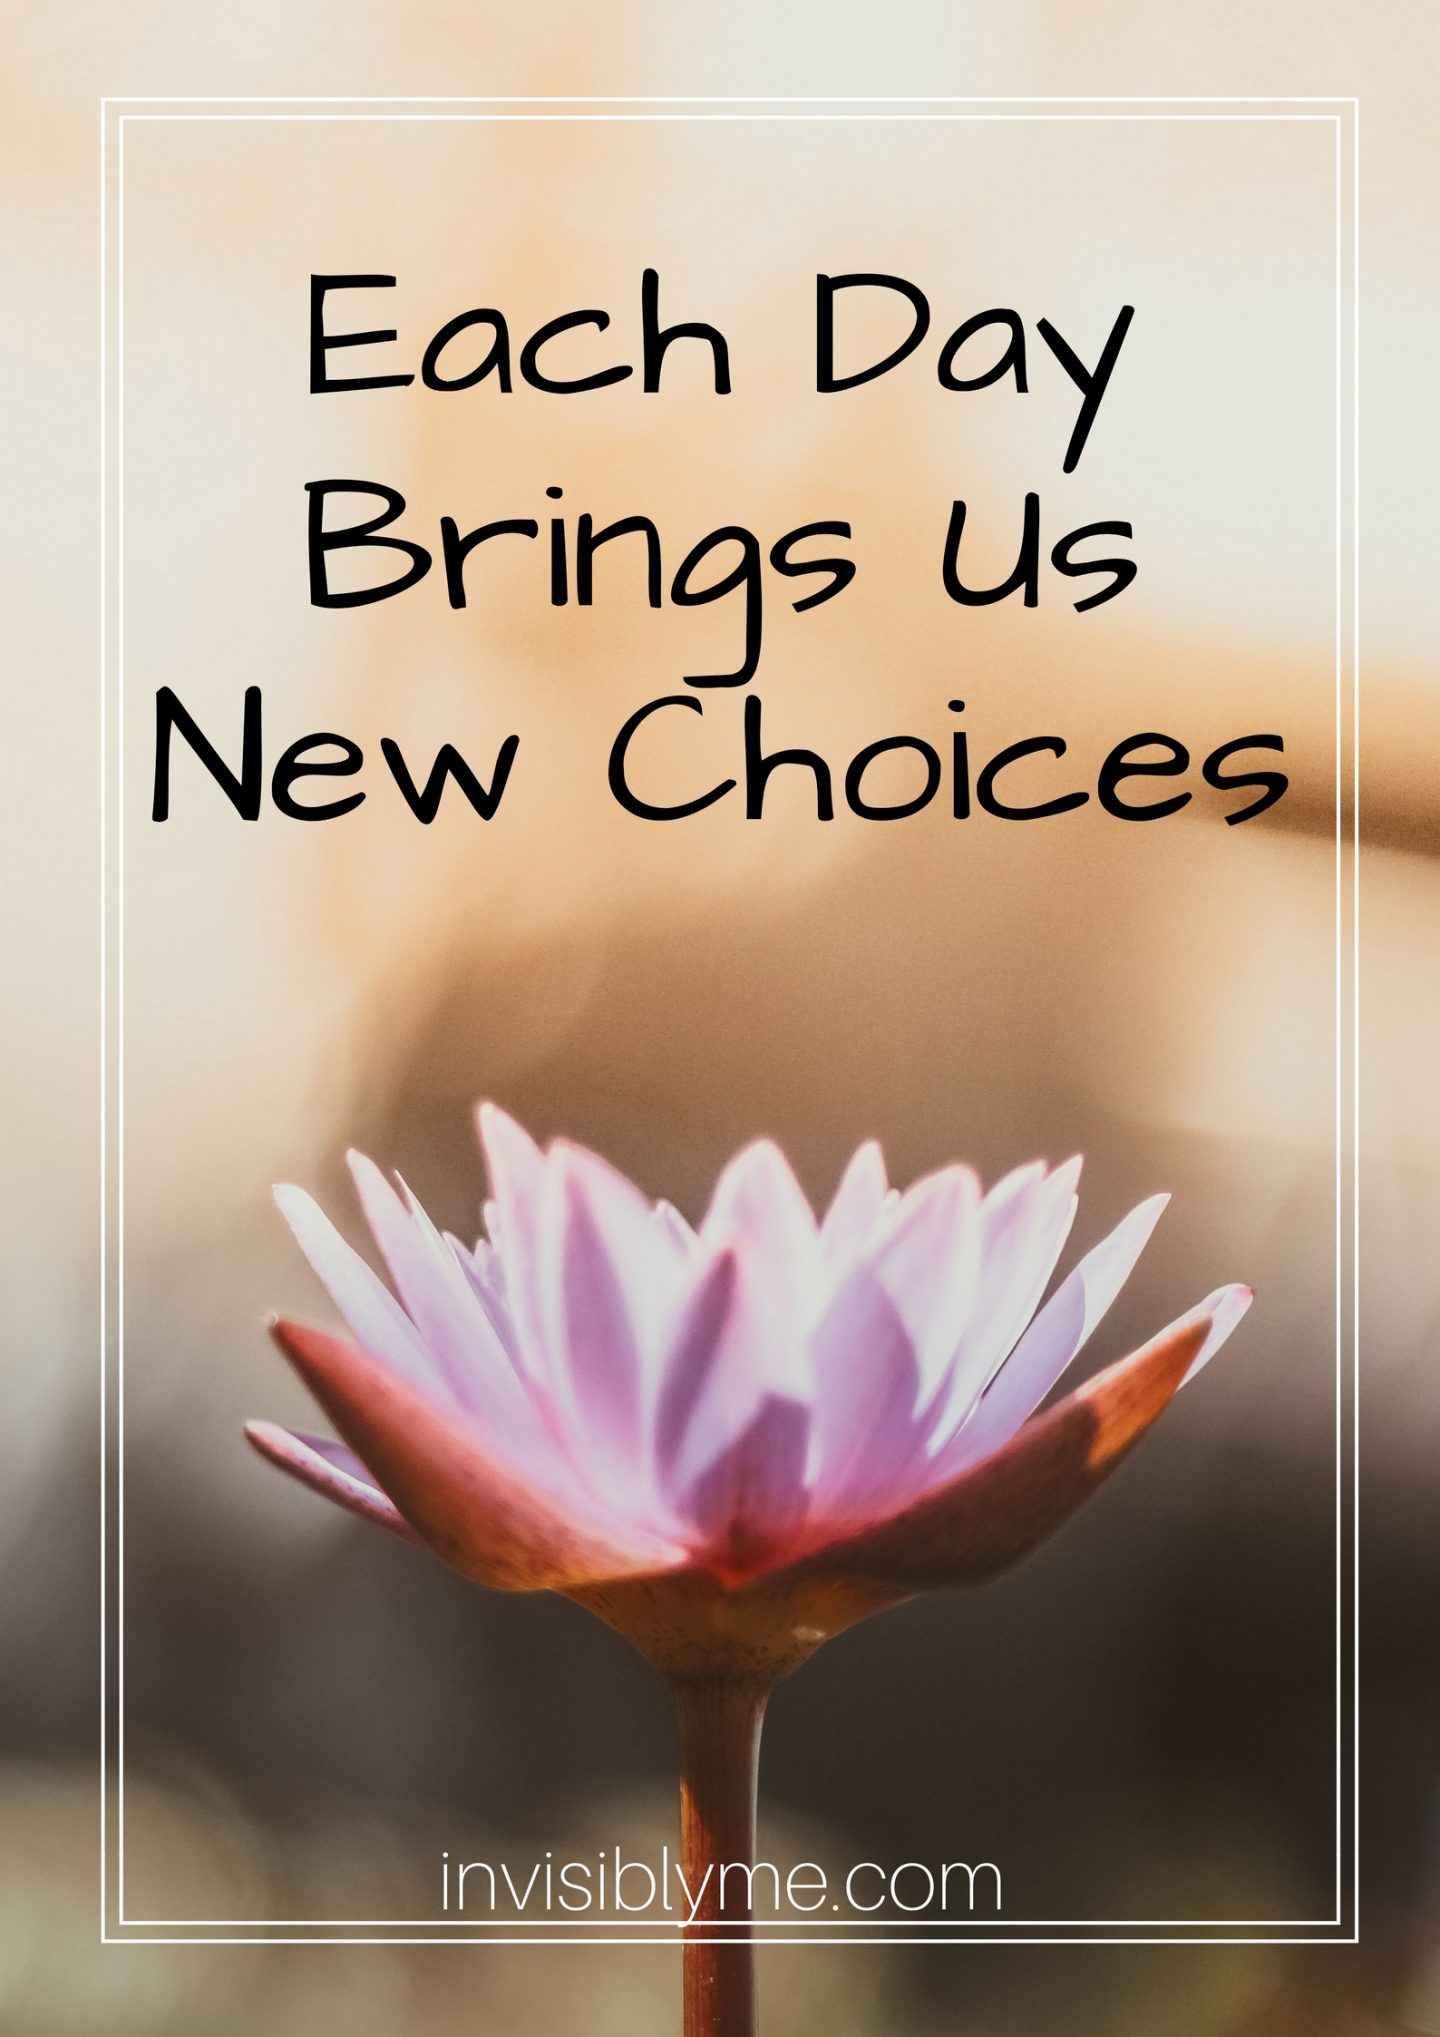 Each Day, New Choices